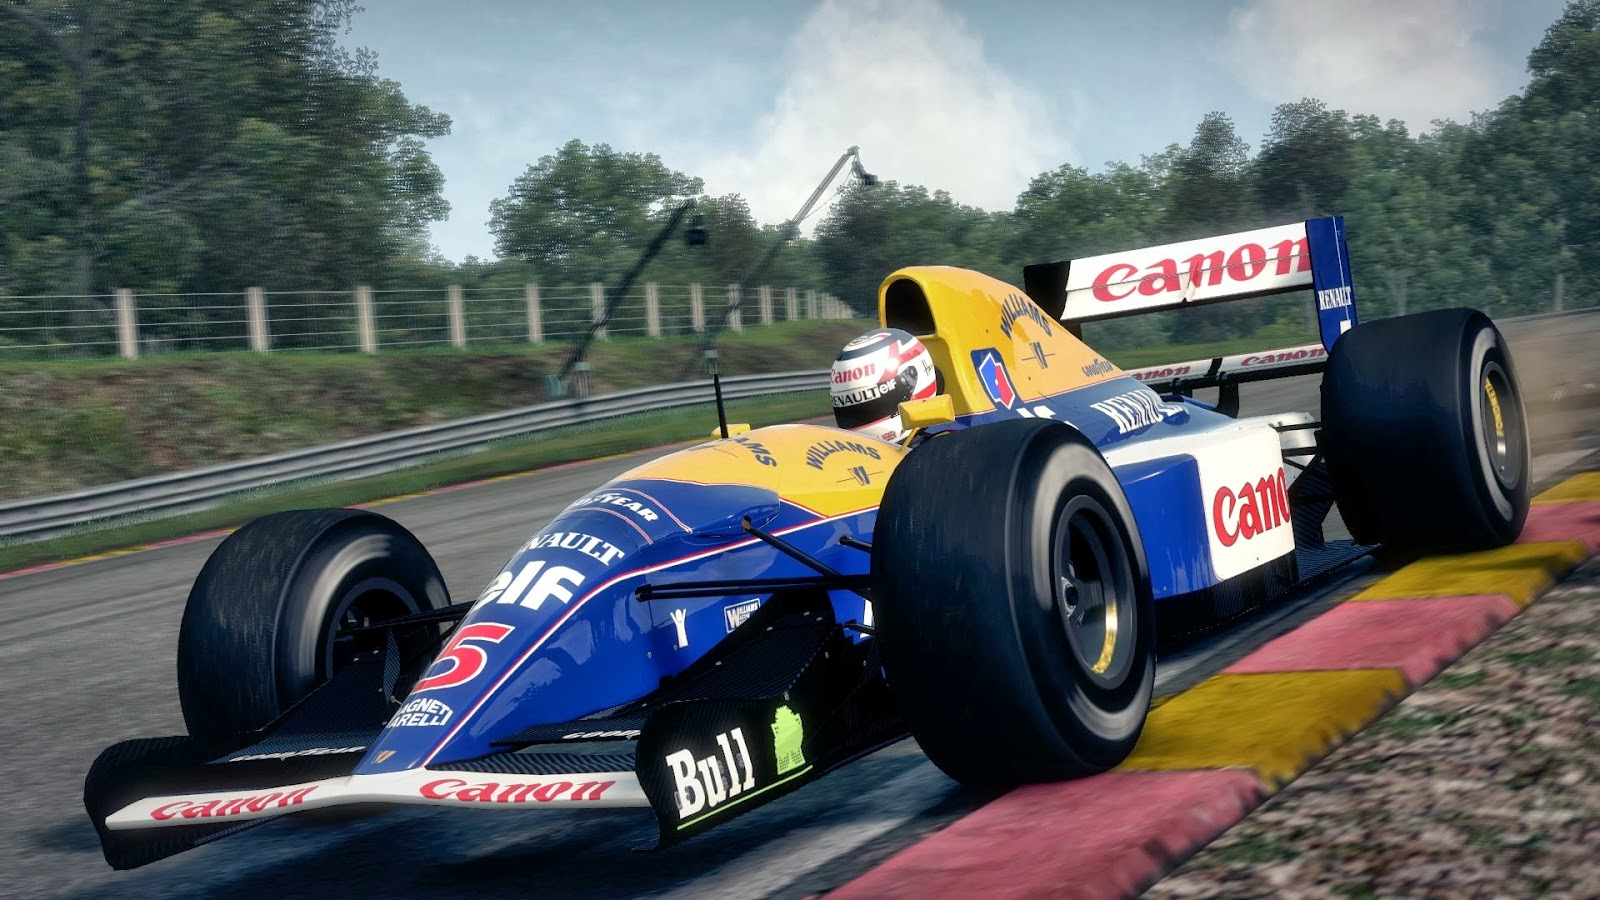 Video games: F1 2013 1990s cars and classic tracks DLC to